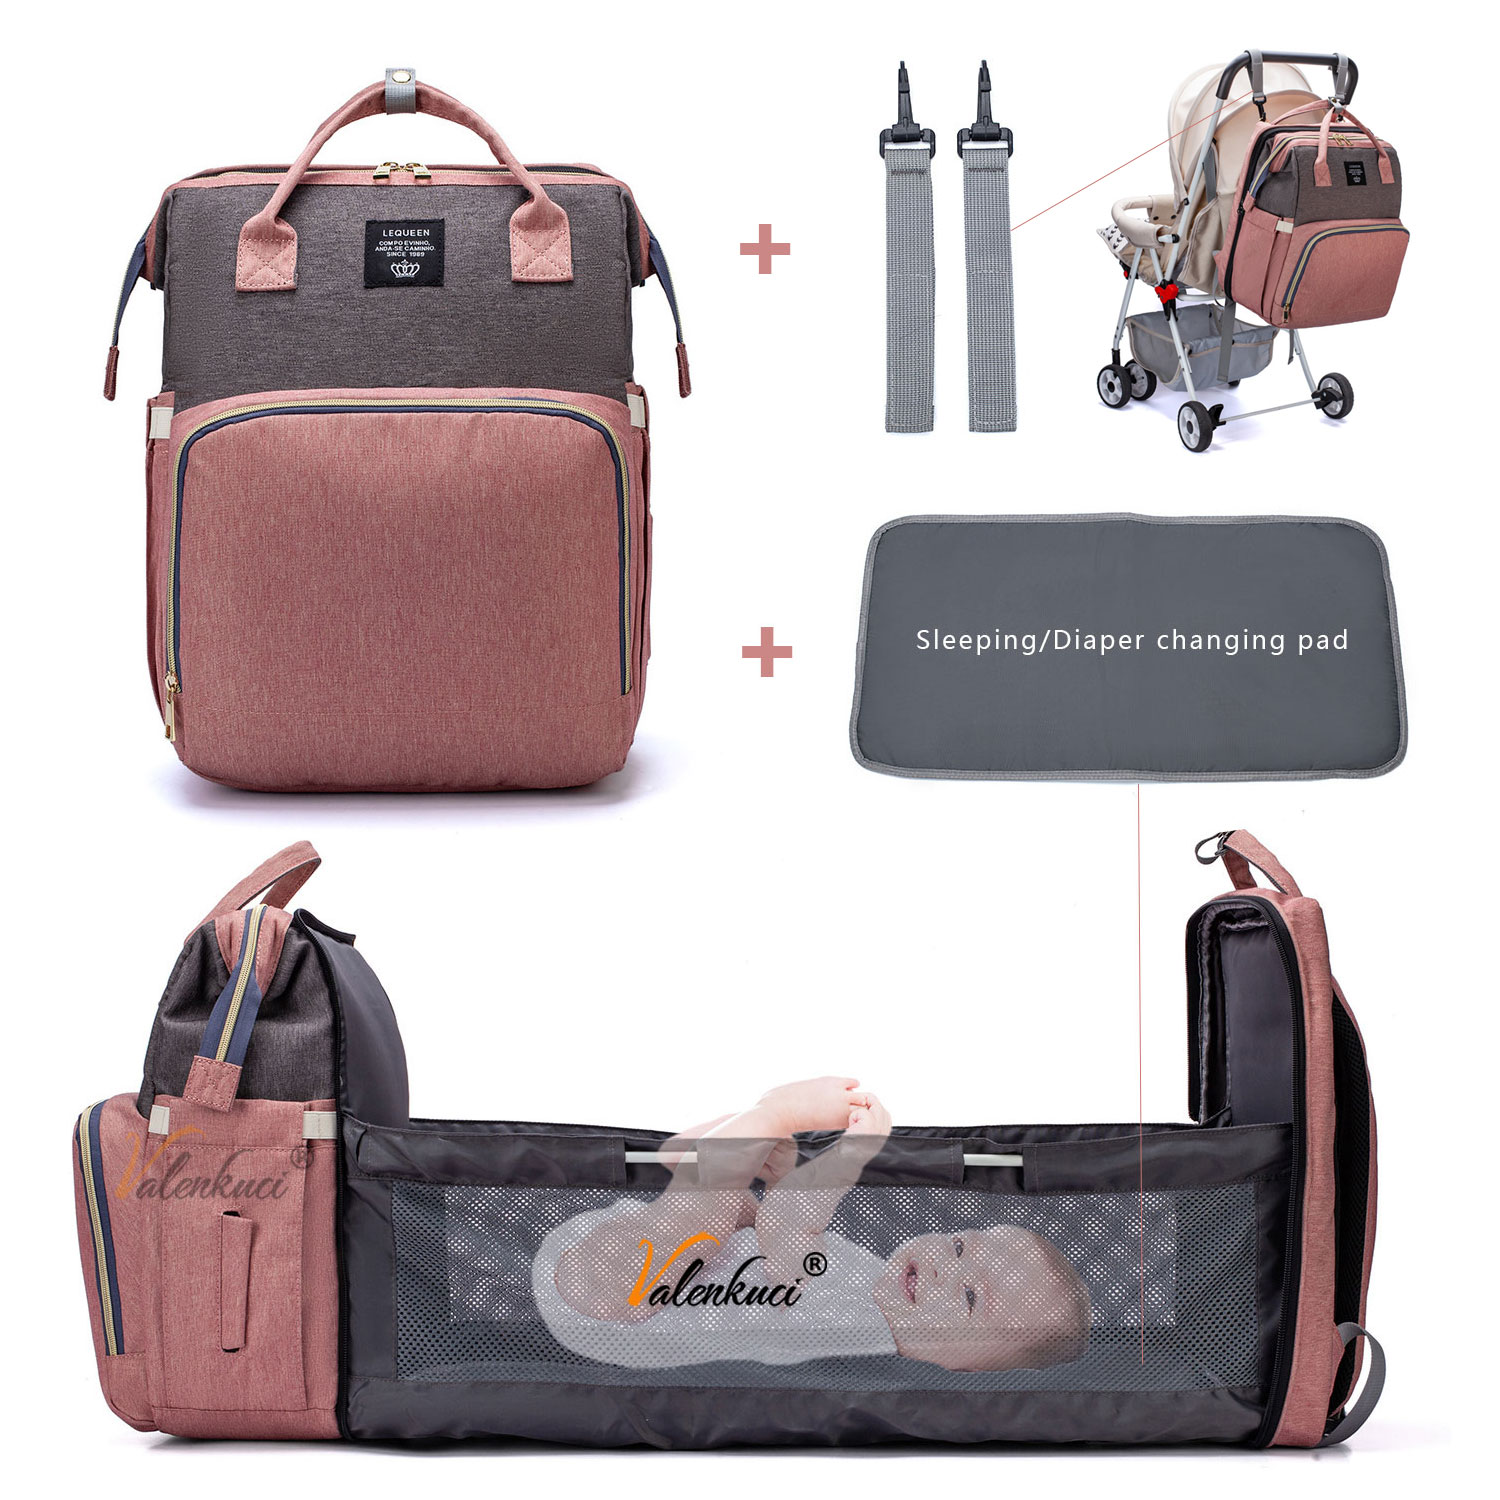 Lequeen multifunction baby bag | Happy Baby Mama